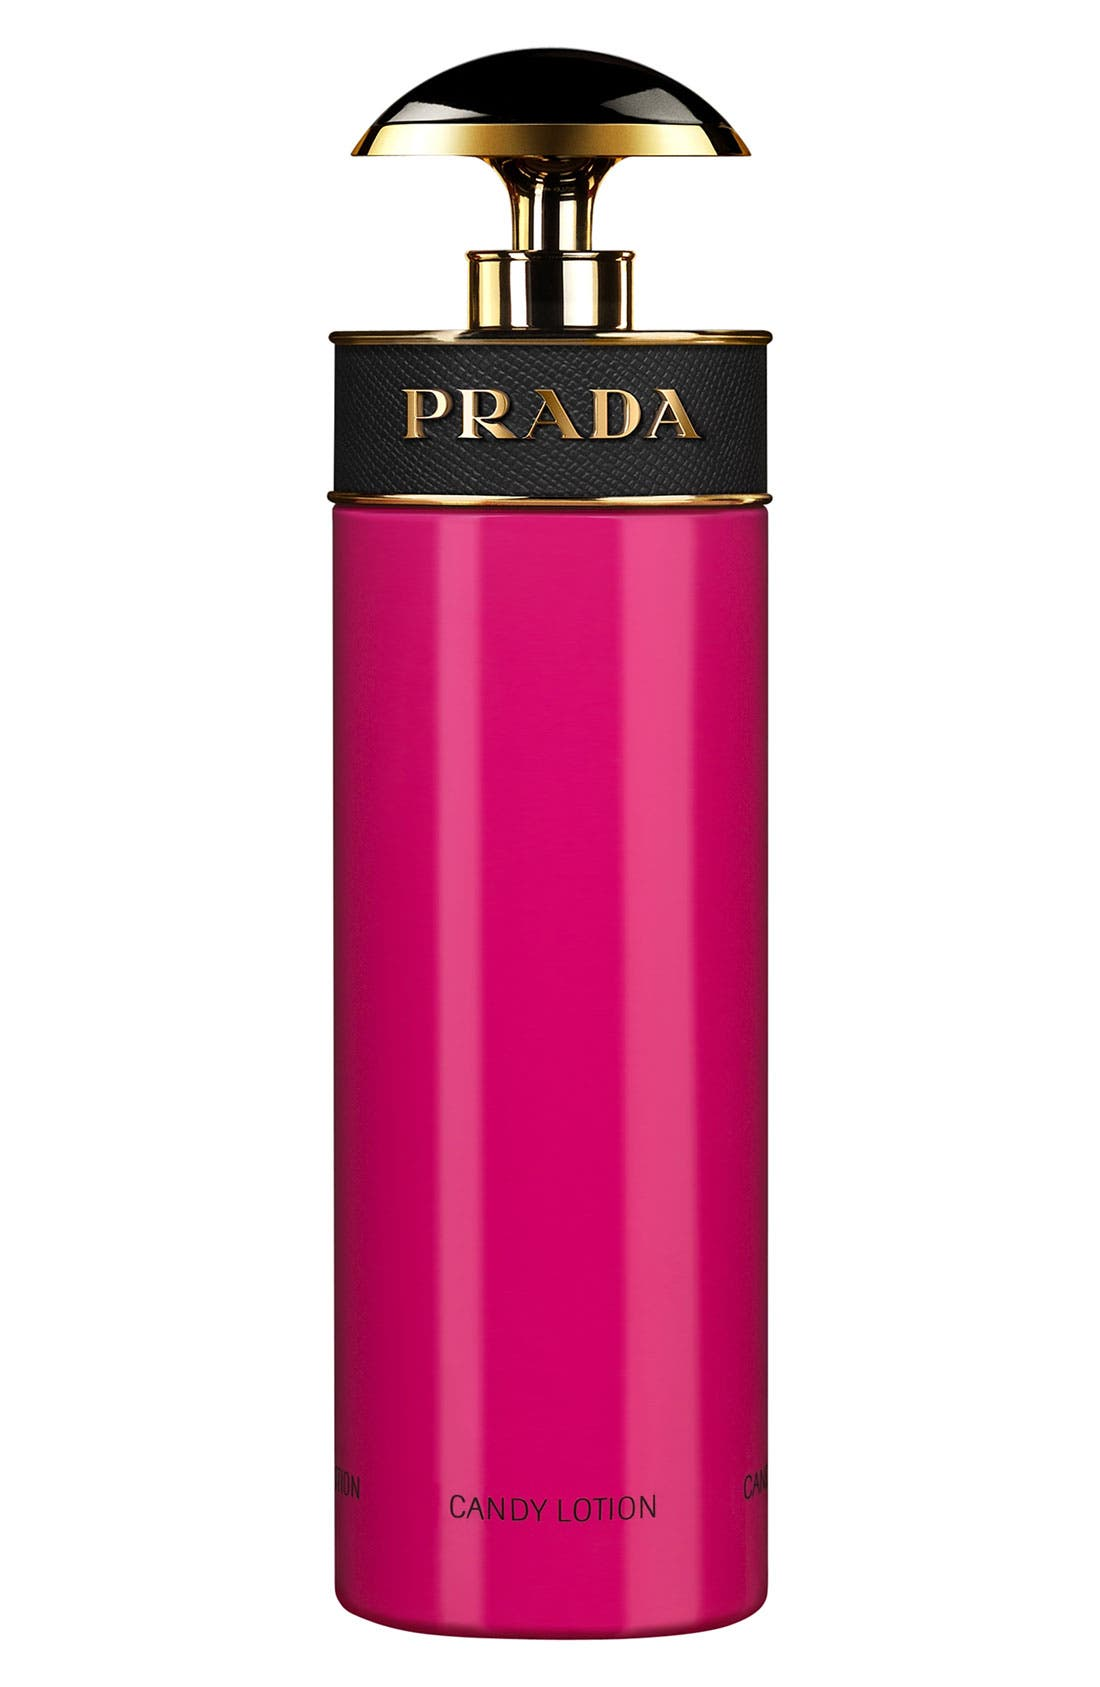 Prada 'Candy' Body Lotion